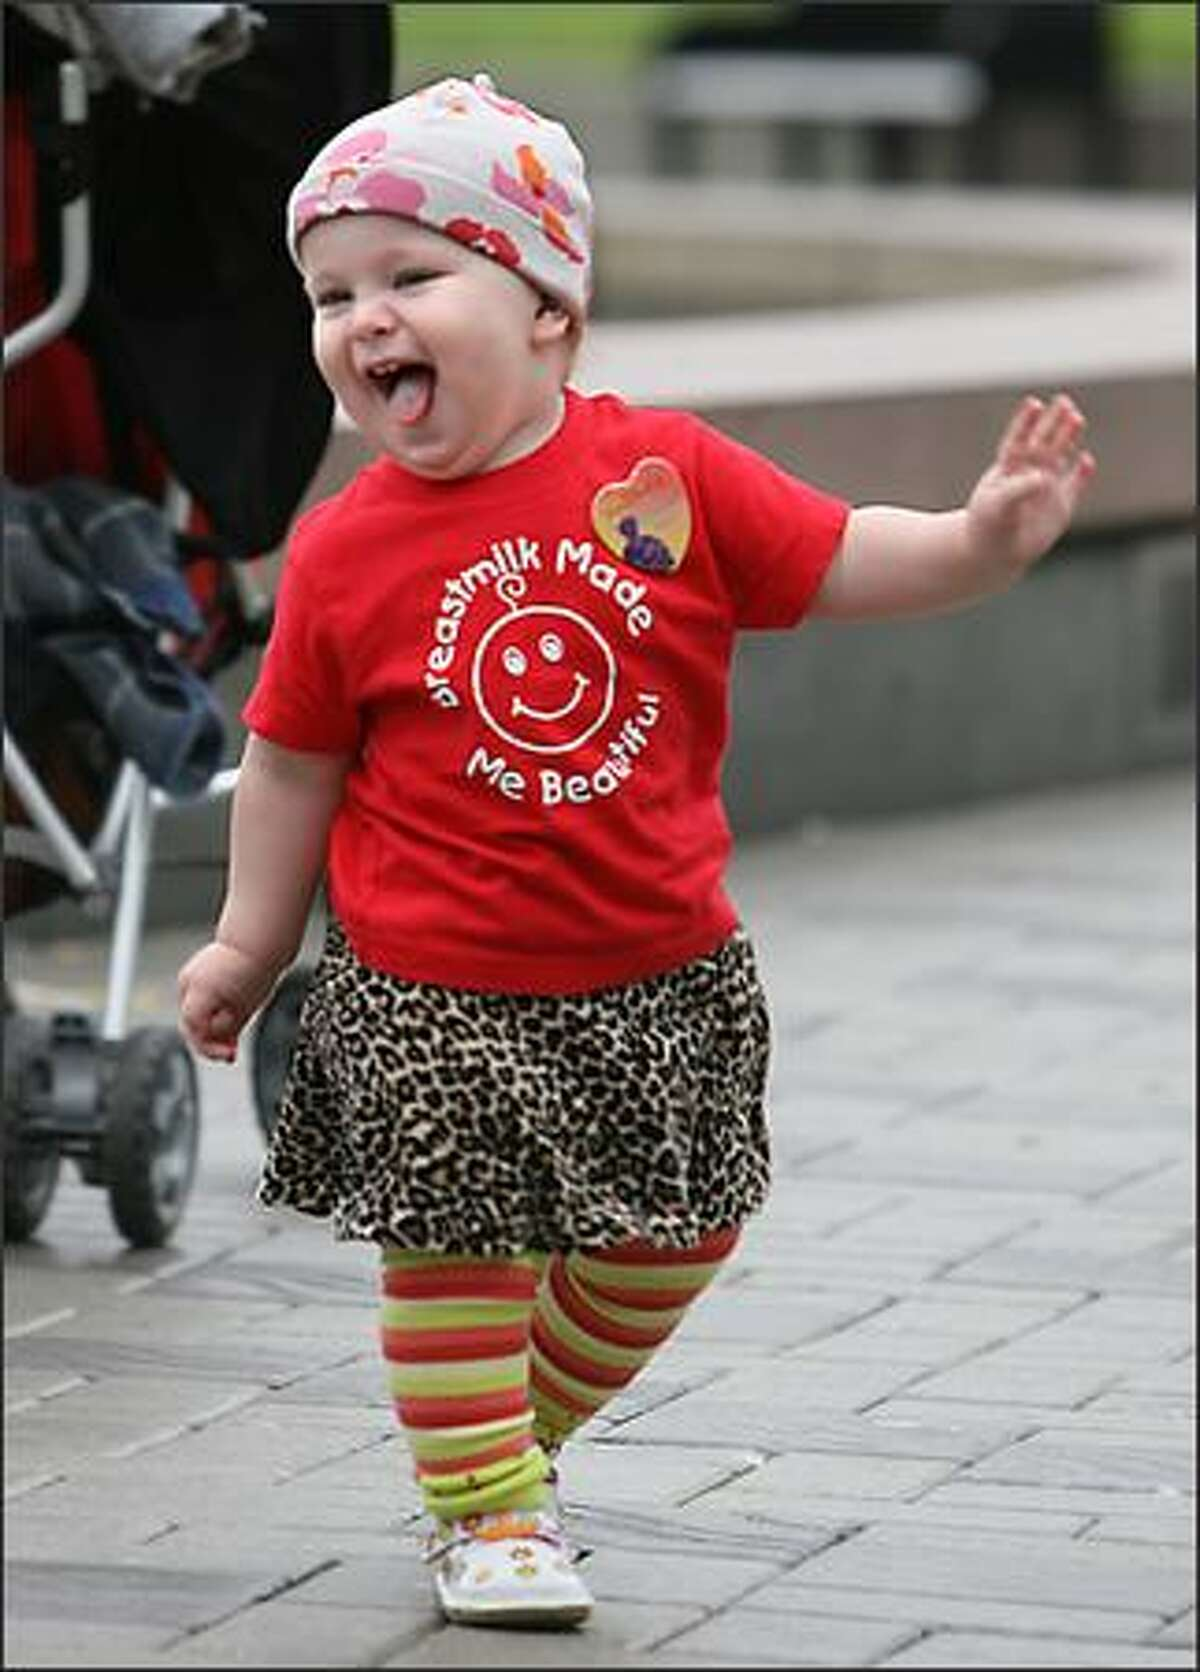 Isabella Biggs, 15 months, dances around the Seattle Center International Fountain as her shirt says it all: